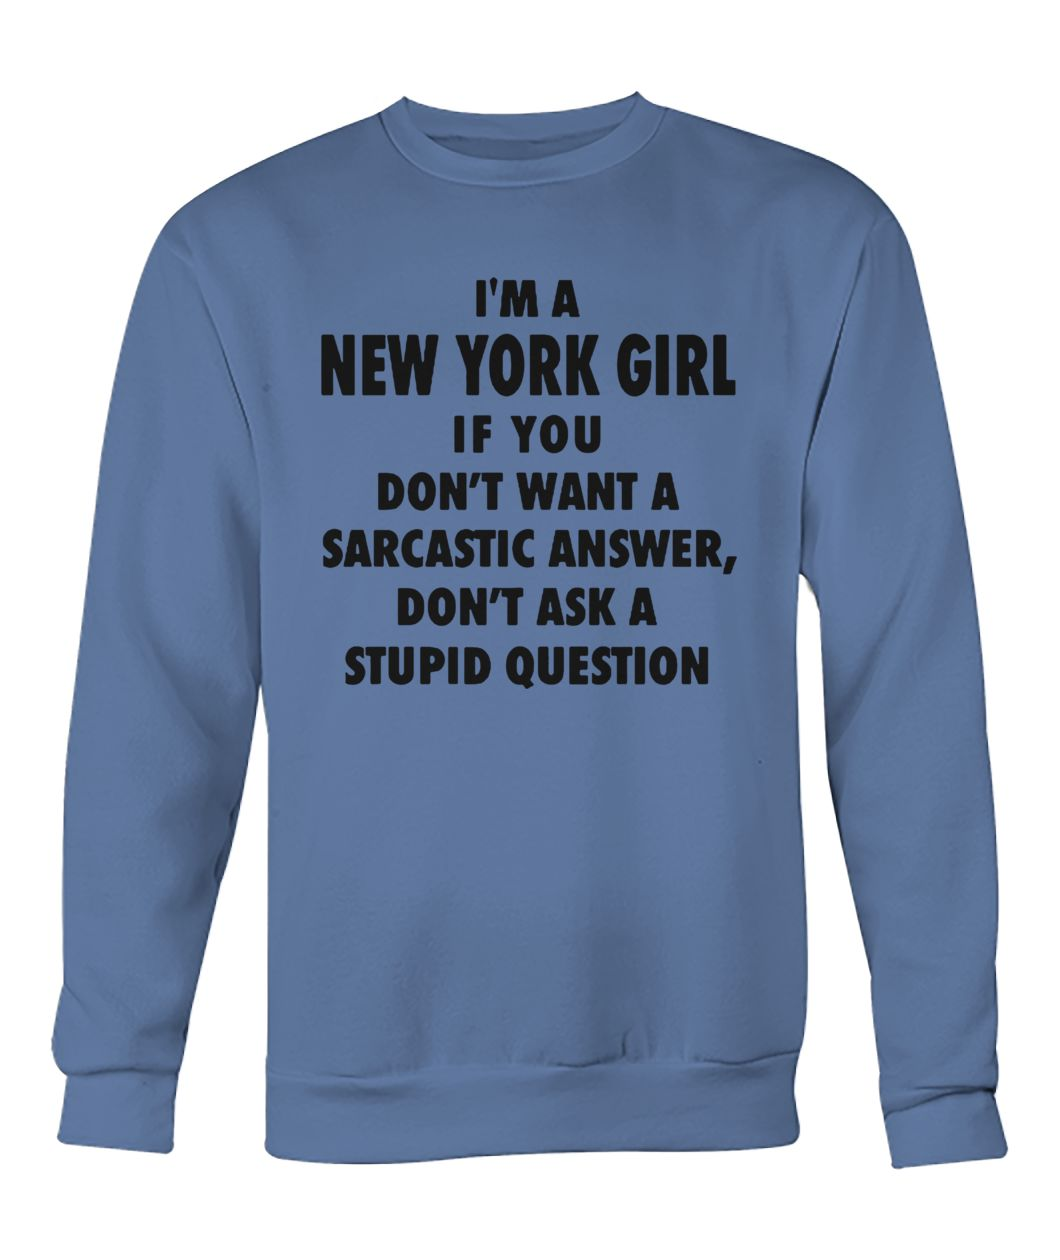 I'm an new york girl if you don't want a sarcastic answer don't ask a stupid question crew neck sweatshirt